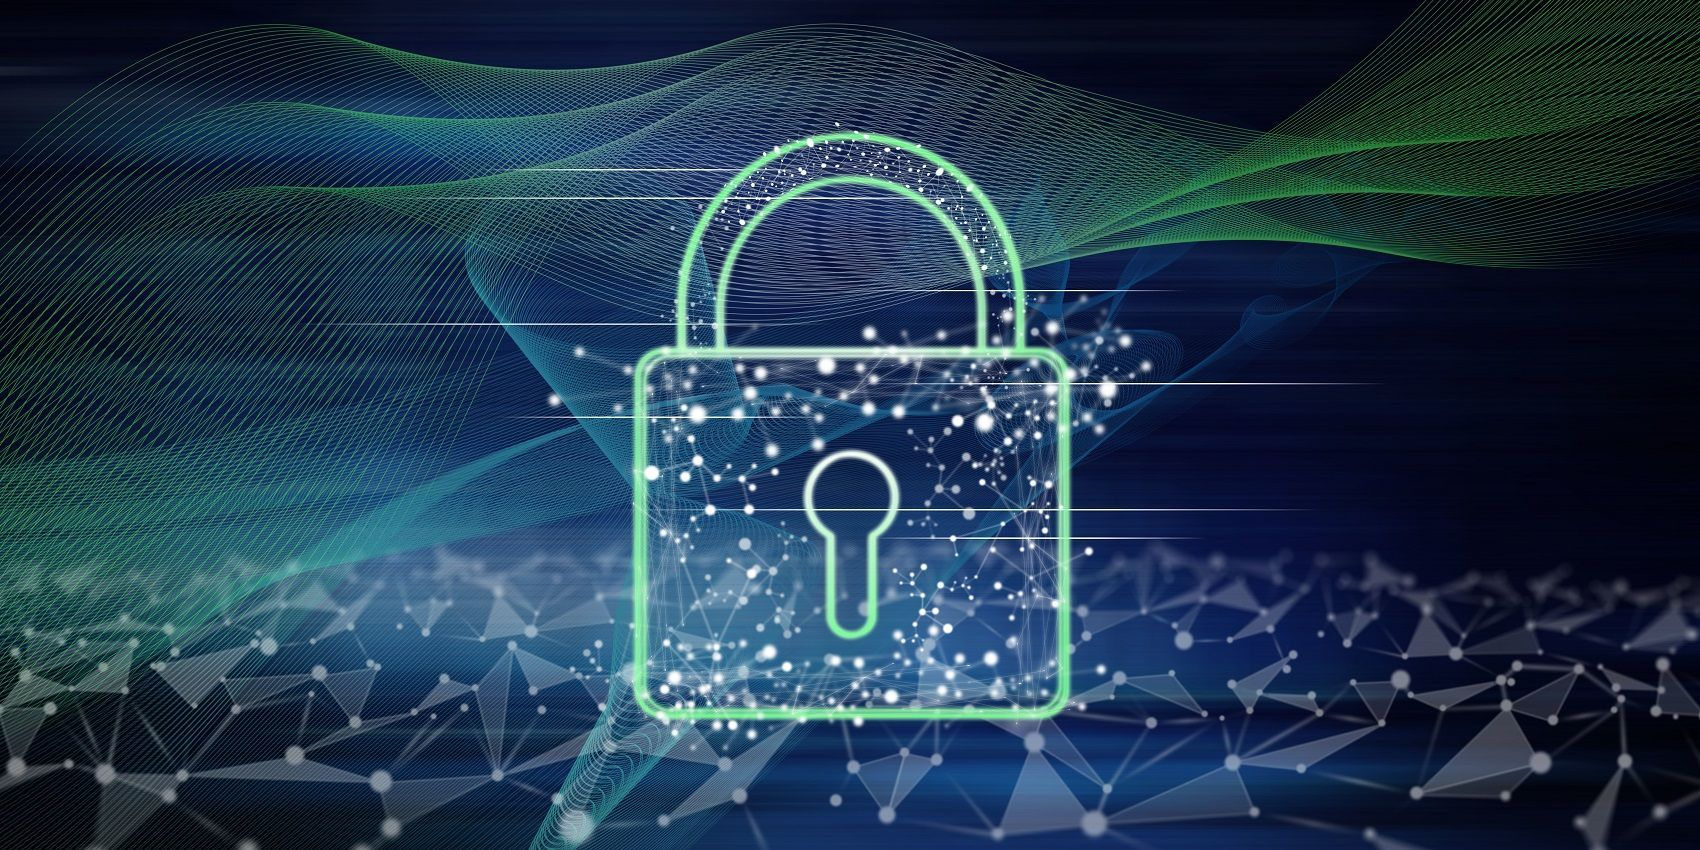 What Can Your Company Do To Attract Top Cybersecurity